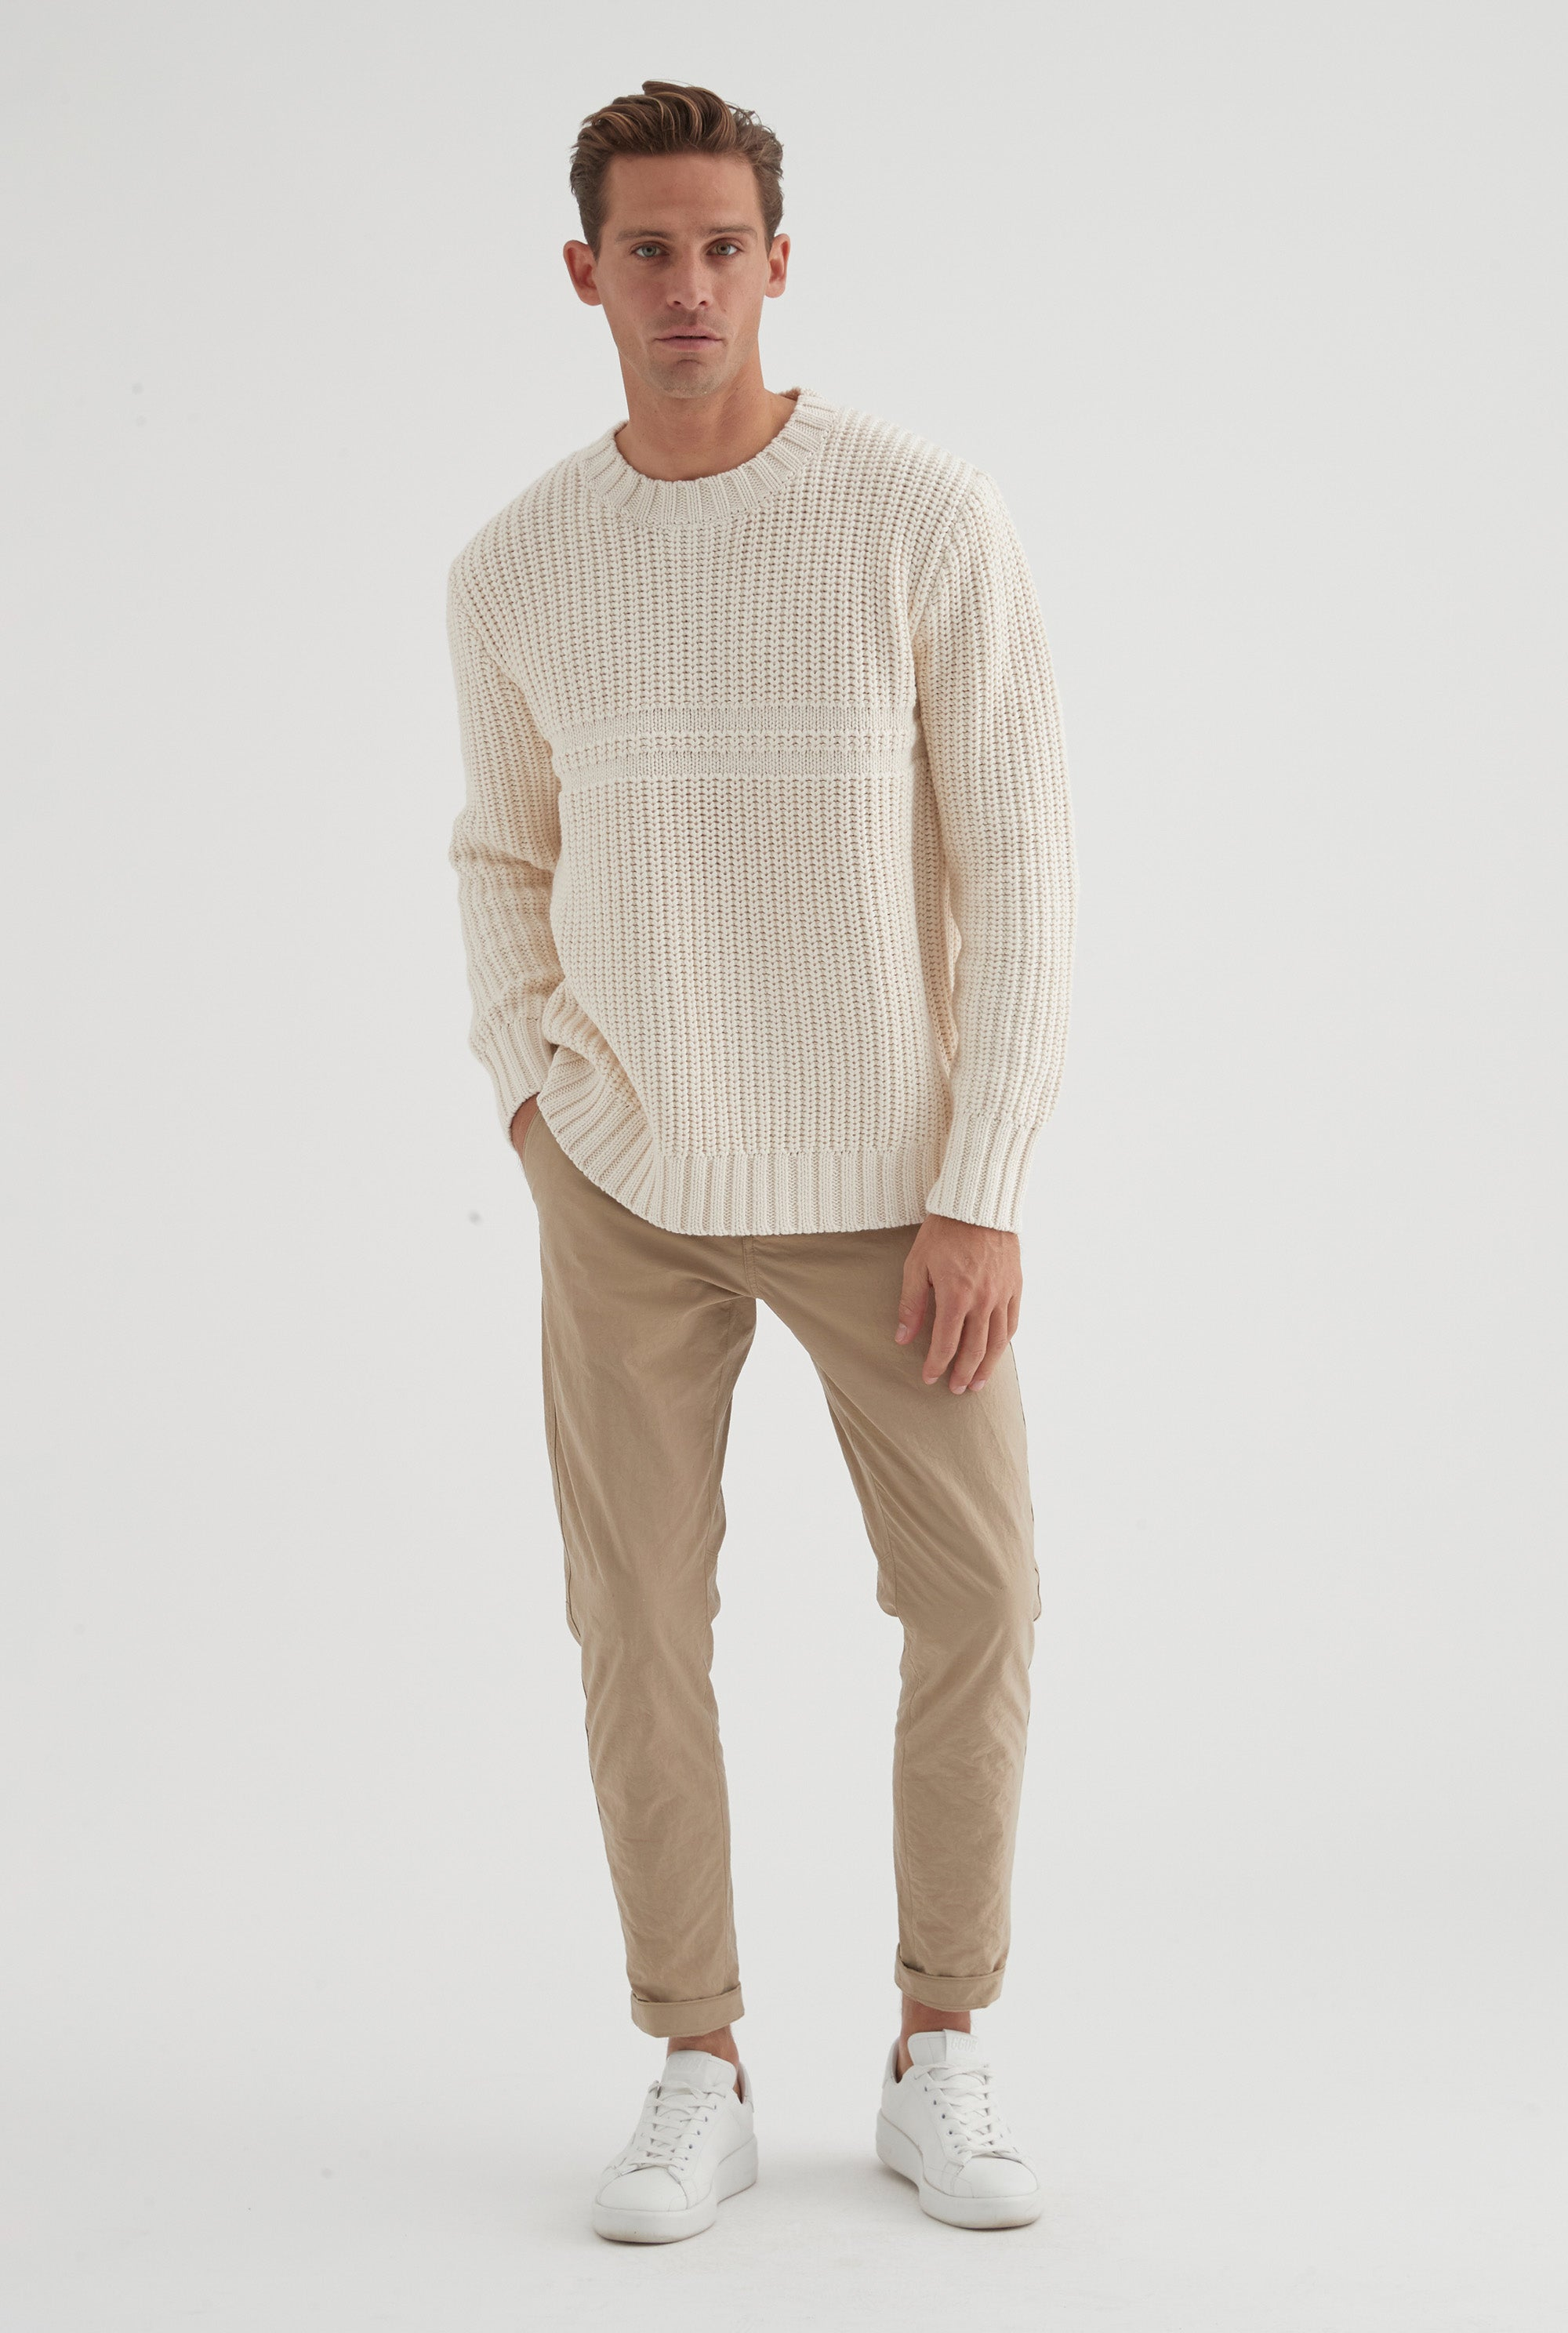 Fancy Knit Sweater - Off White